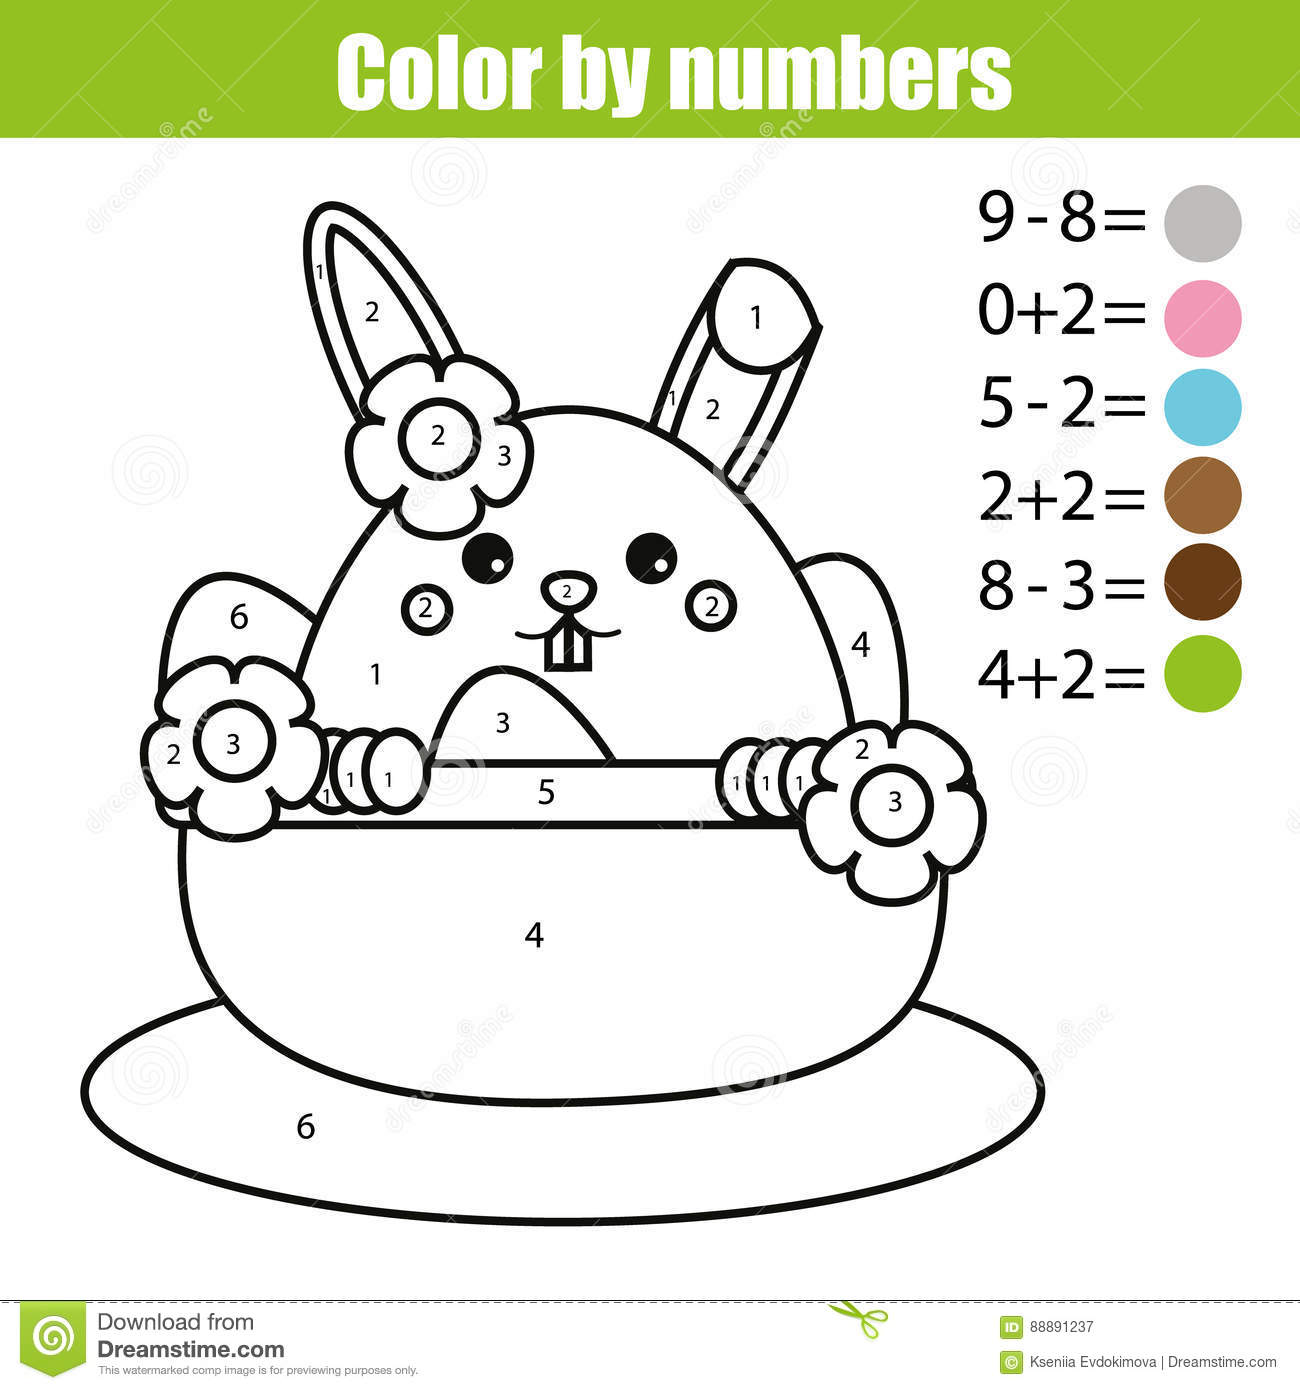 Coloring Page With Easter Bunny Character Color By Numbers Math Educational Children Game